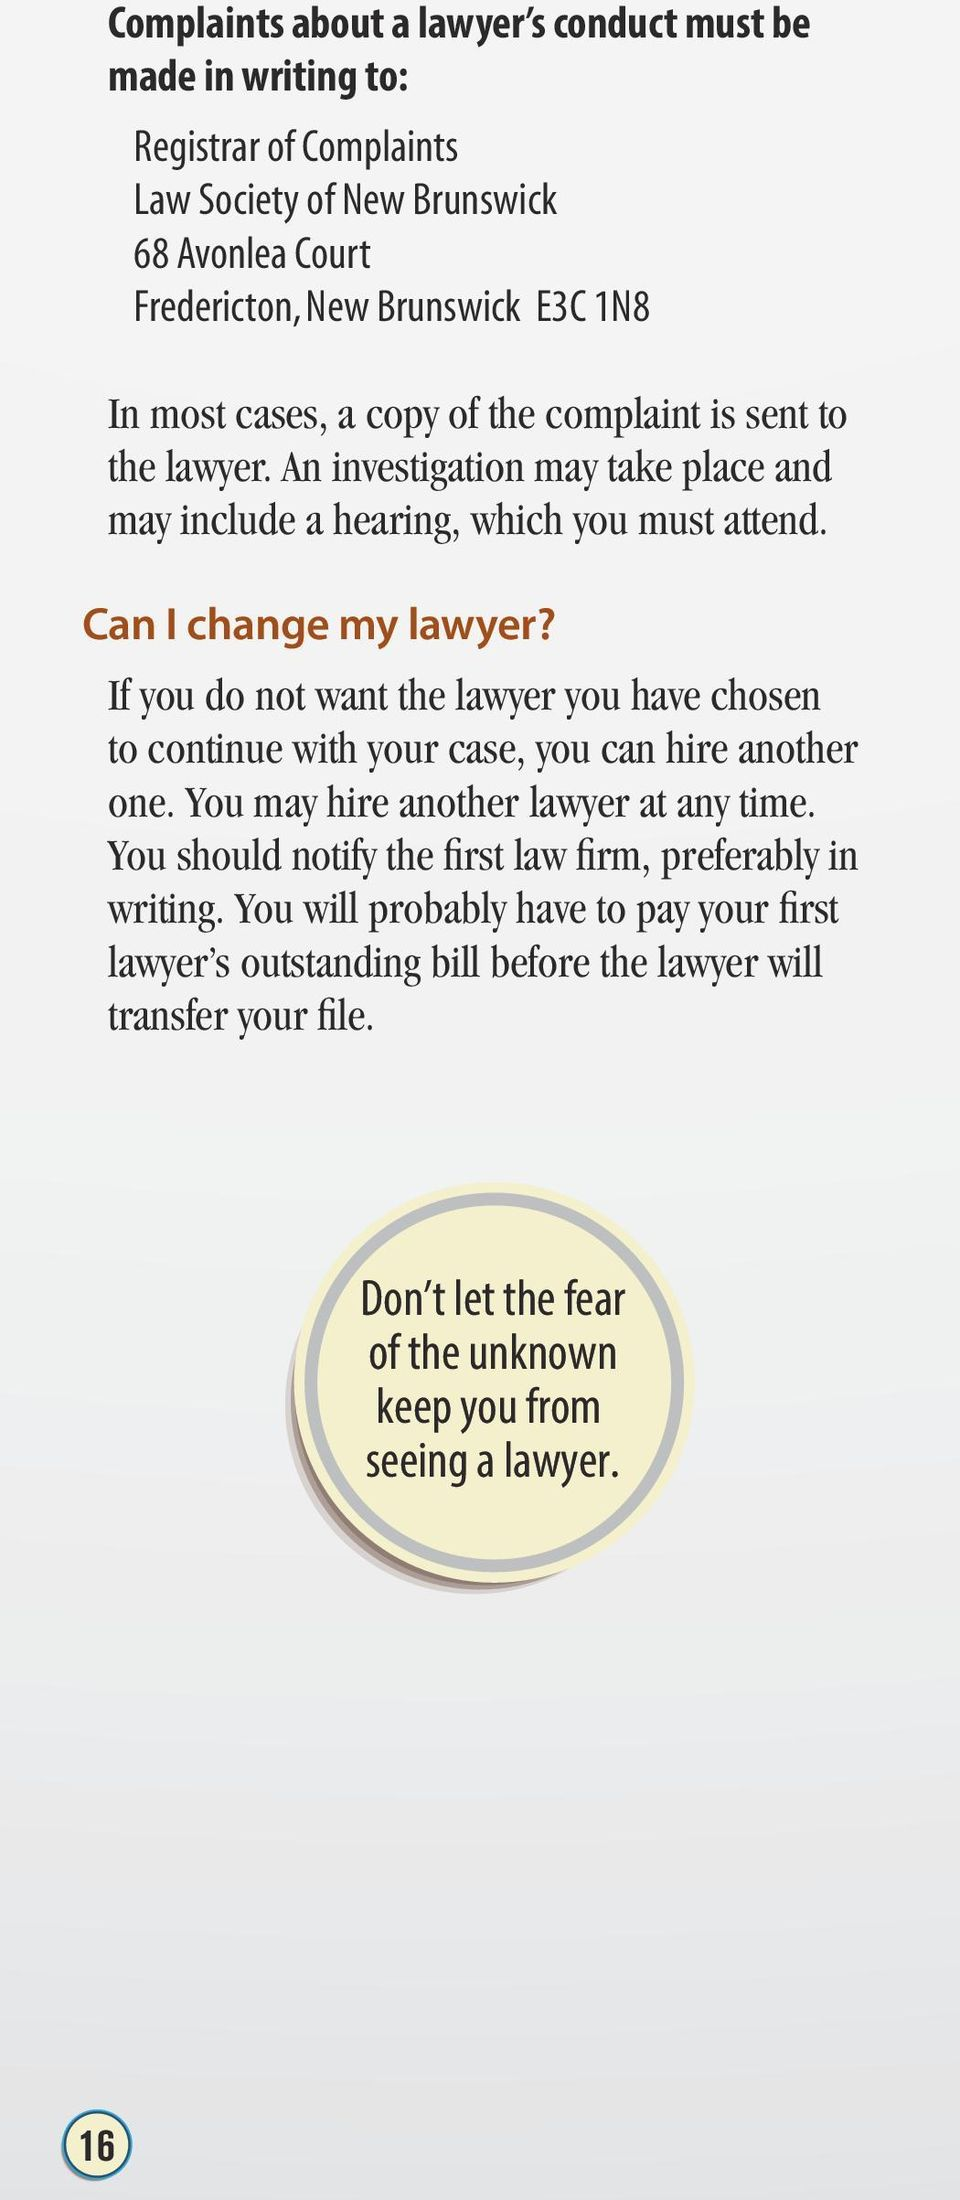 If you do not want the lawyer you have chosen to continue with your case, you can hire another one. You may hire another lawyer at any time.